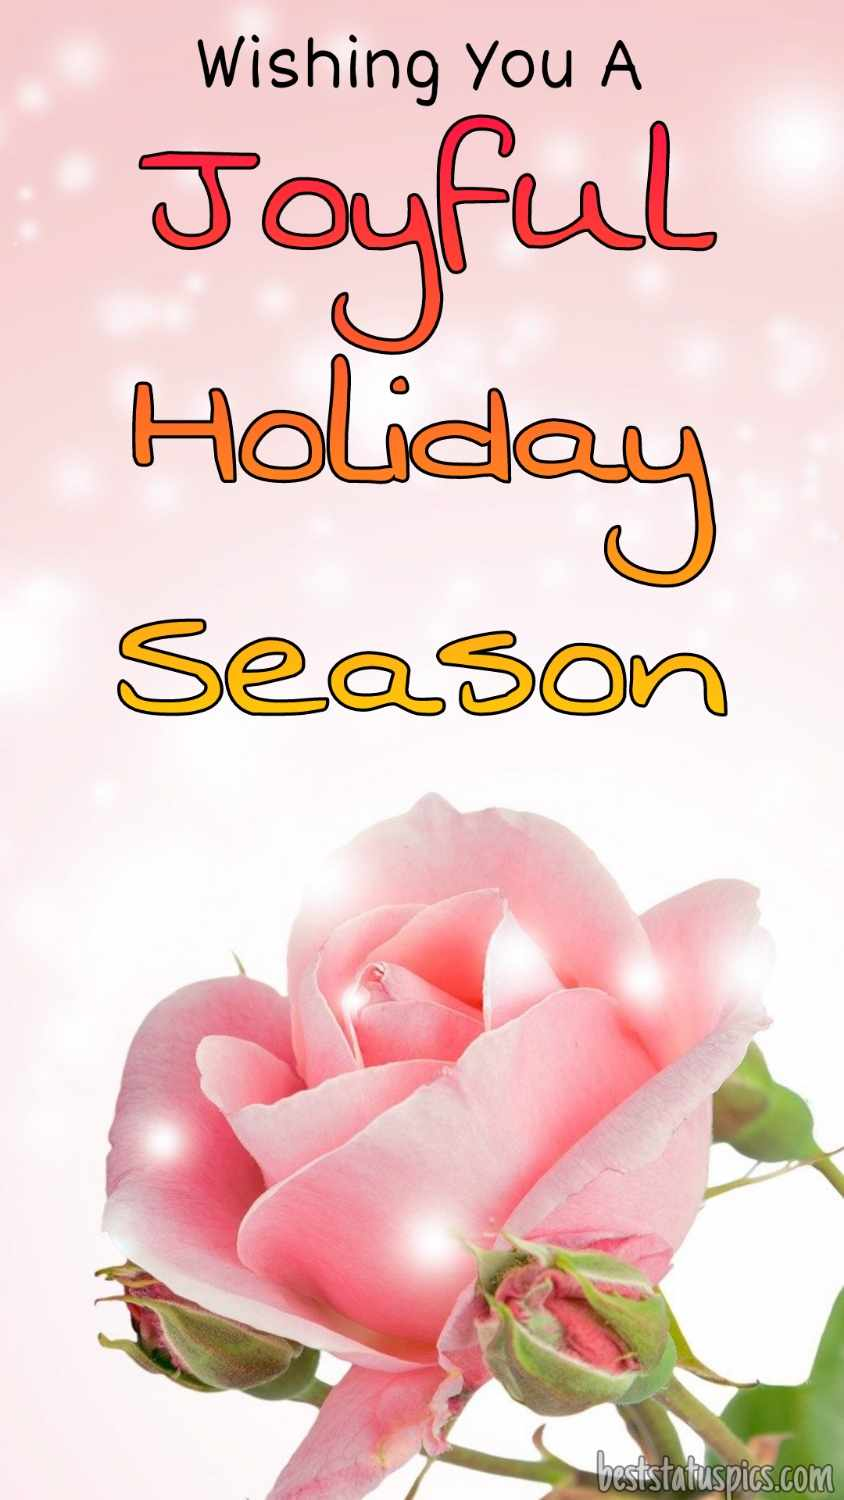 Happy holidays 2022 wishes images with pink rose for lover and girlfriend